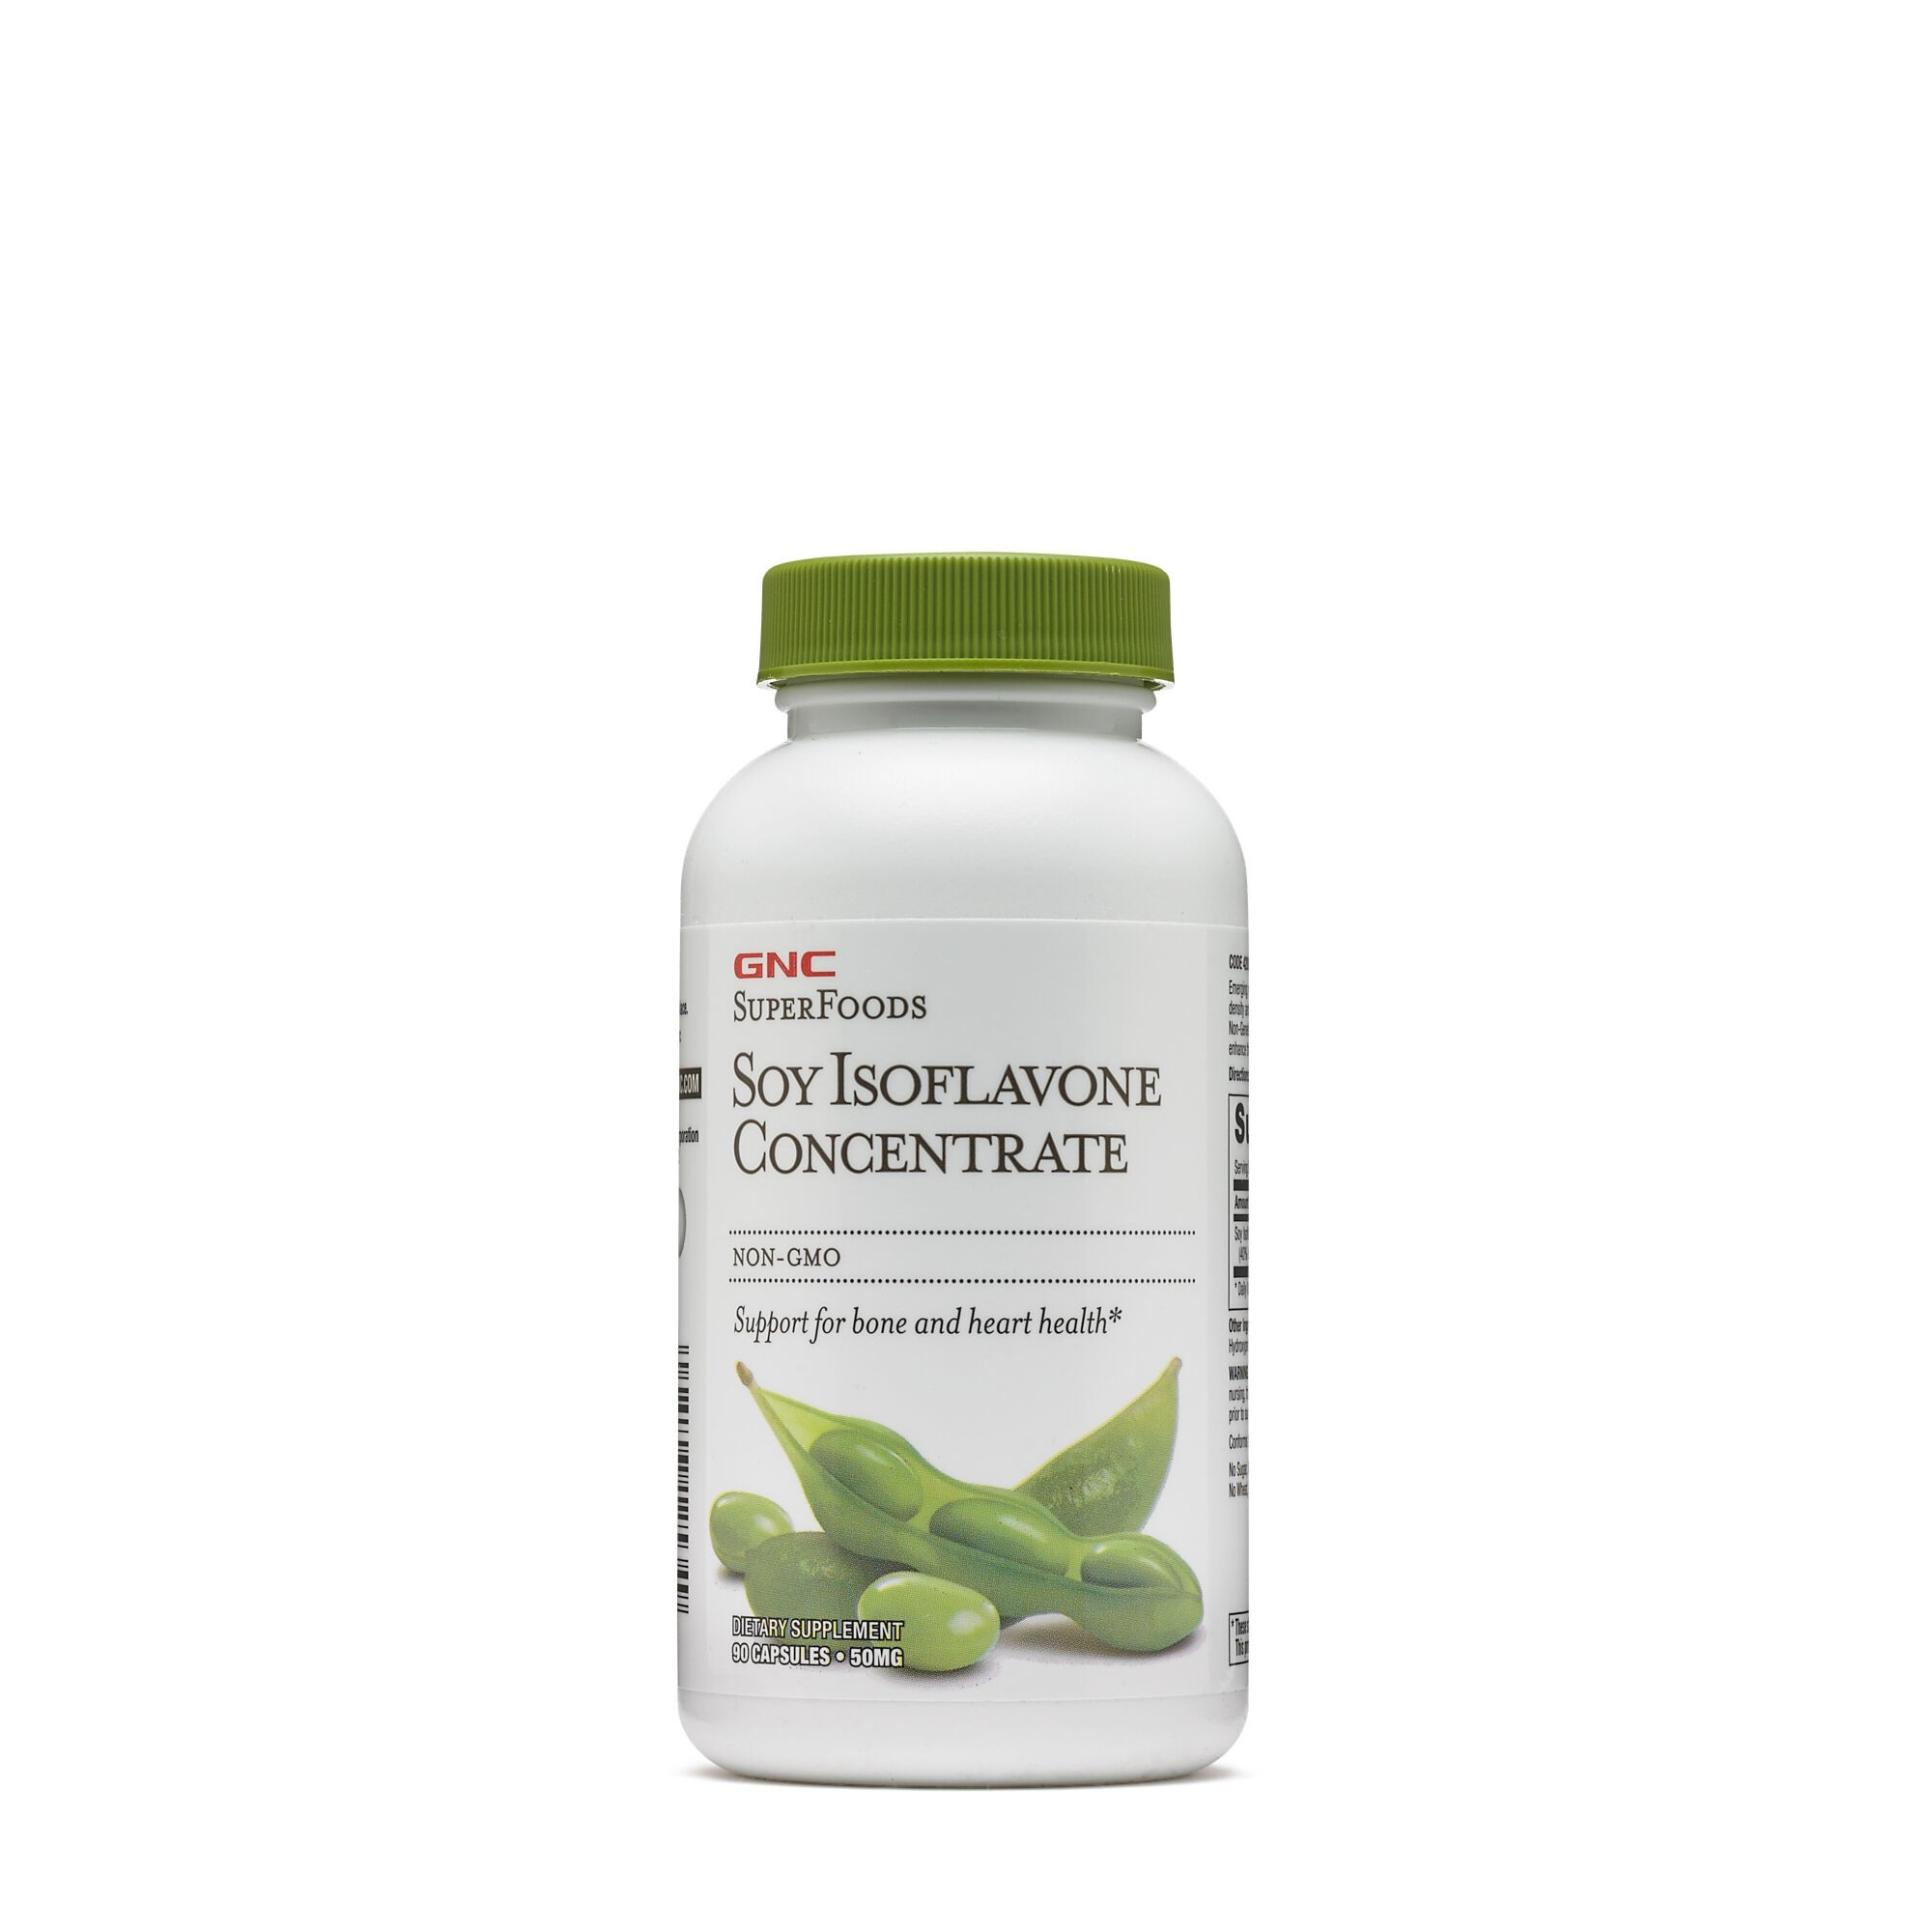 GNC SuperFoods Soy Isoflavone Concentrate, Isoflavone din Soia, 90 cps